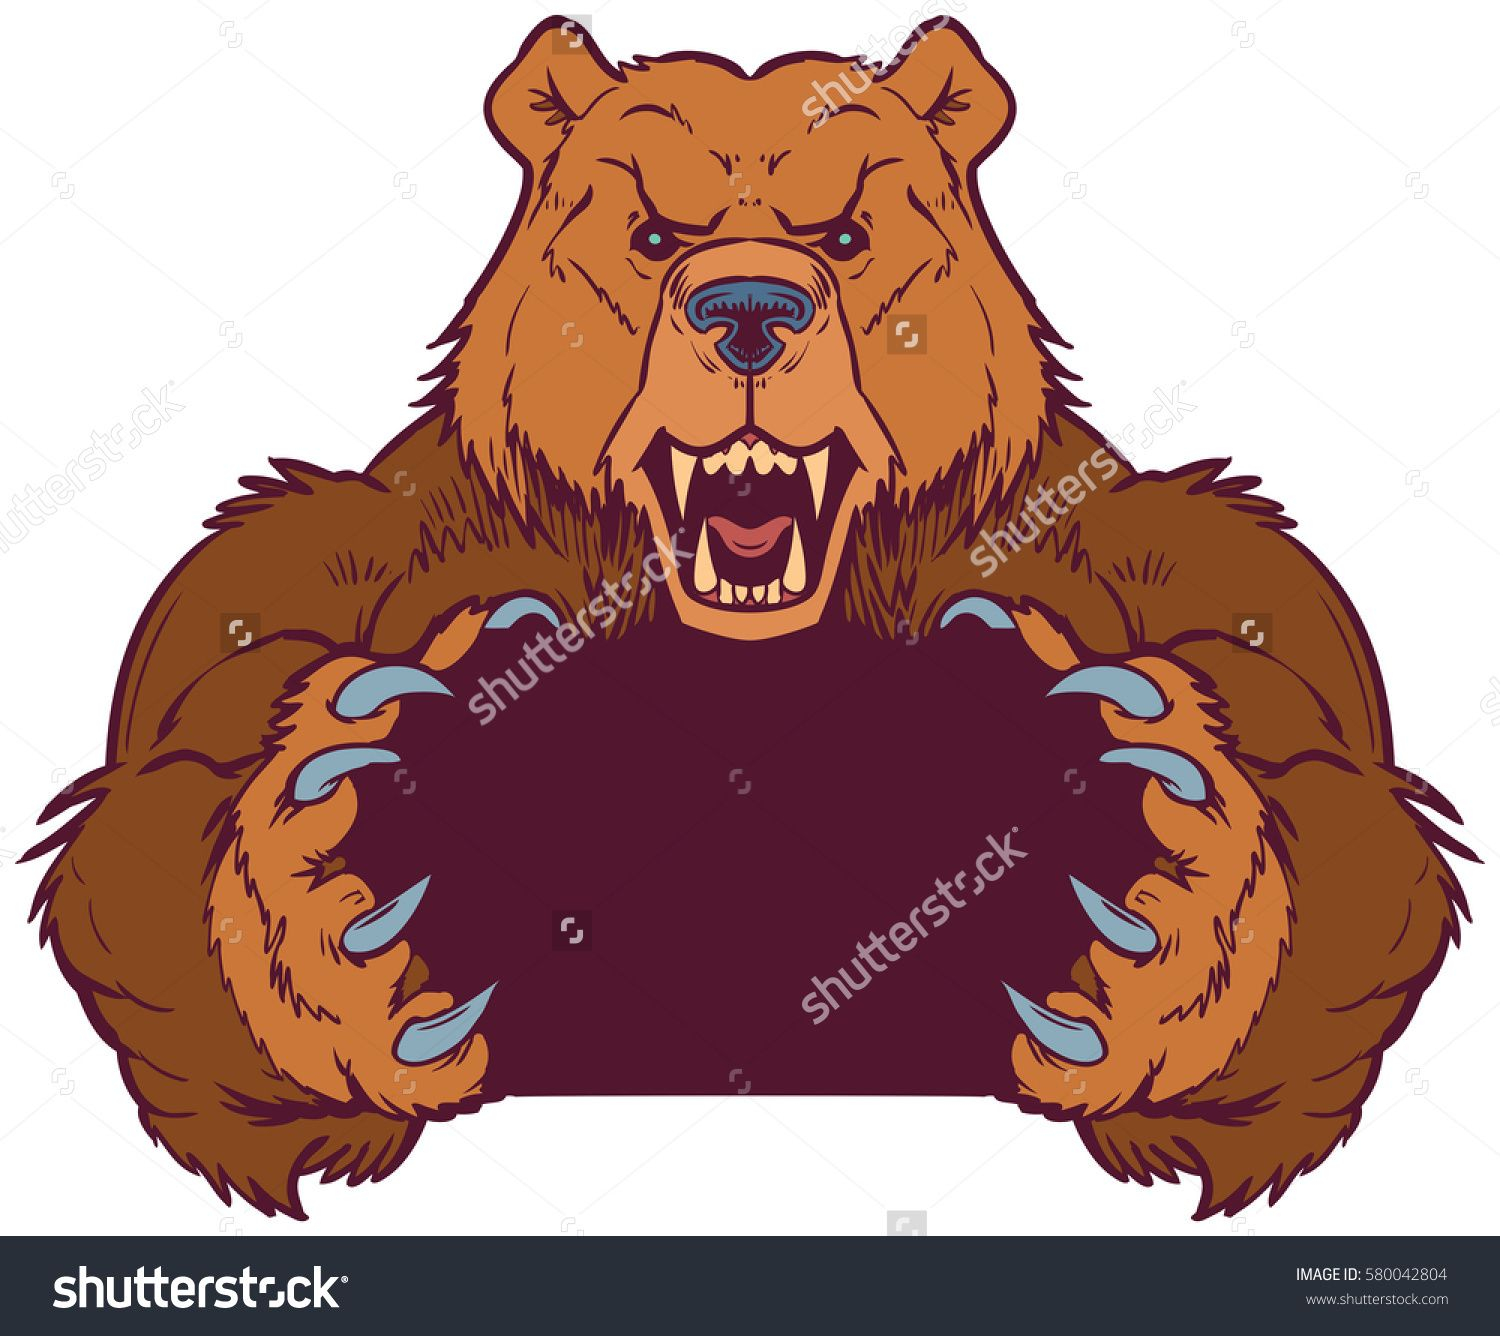 hight resolution of  cartoon clipart illustration template of a brown bear mascot holding or gripping empty space between its claws vector layers are set up for easy